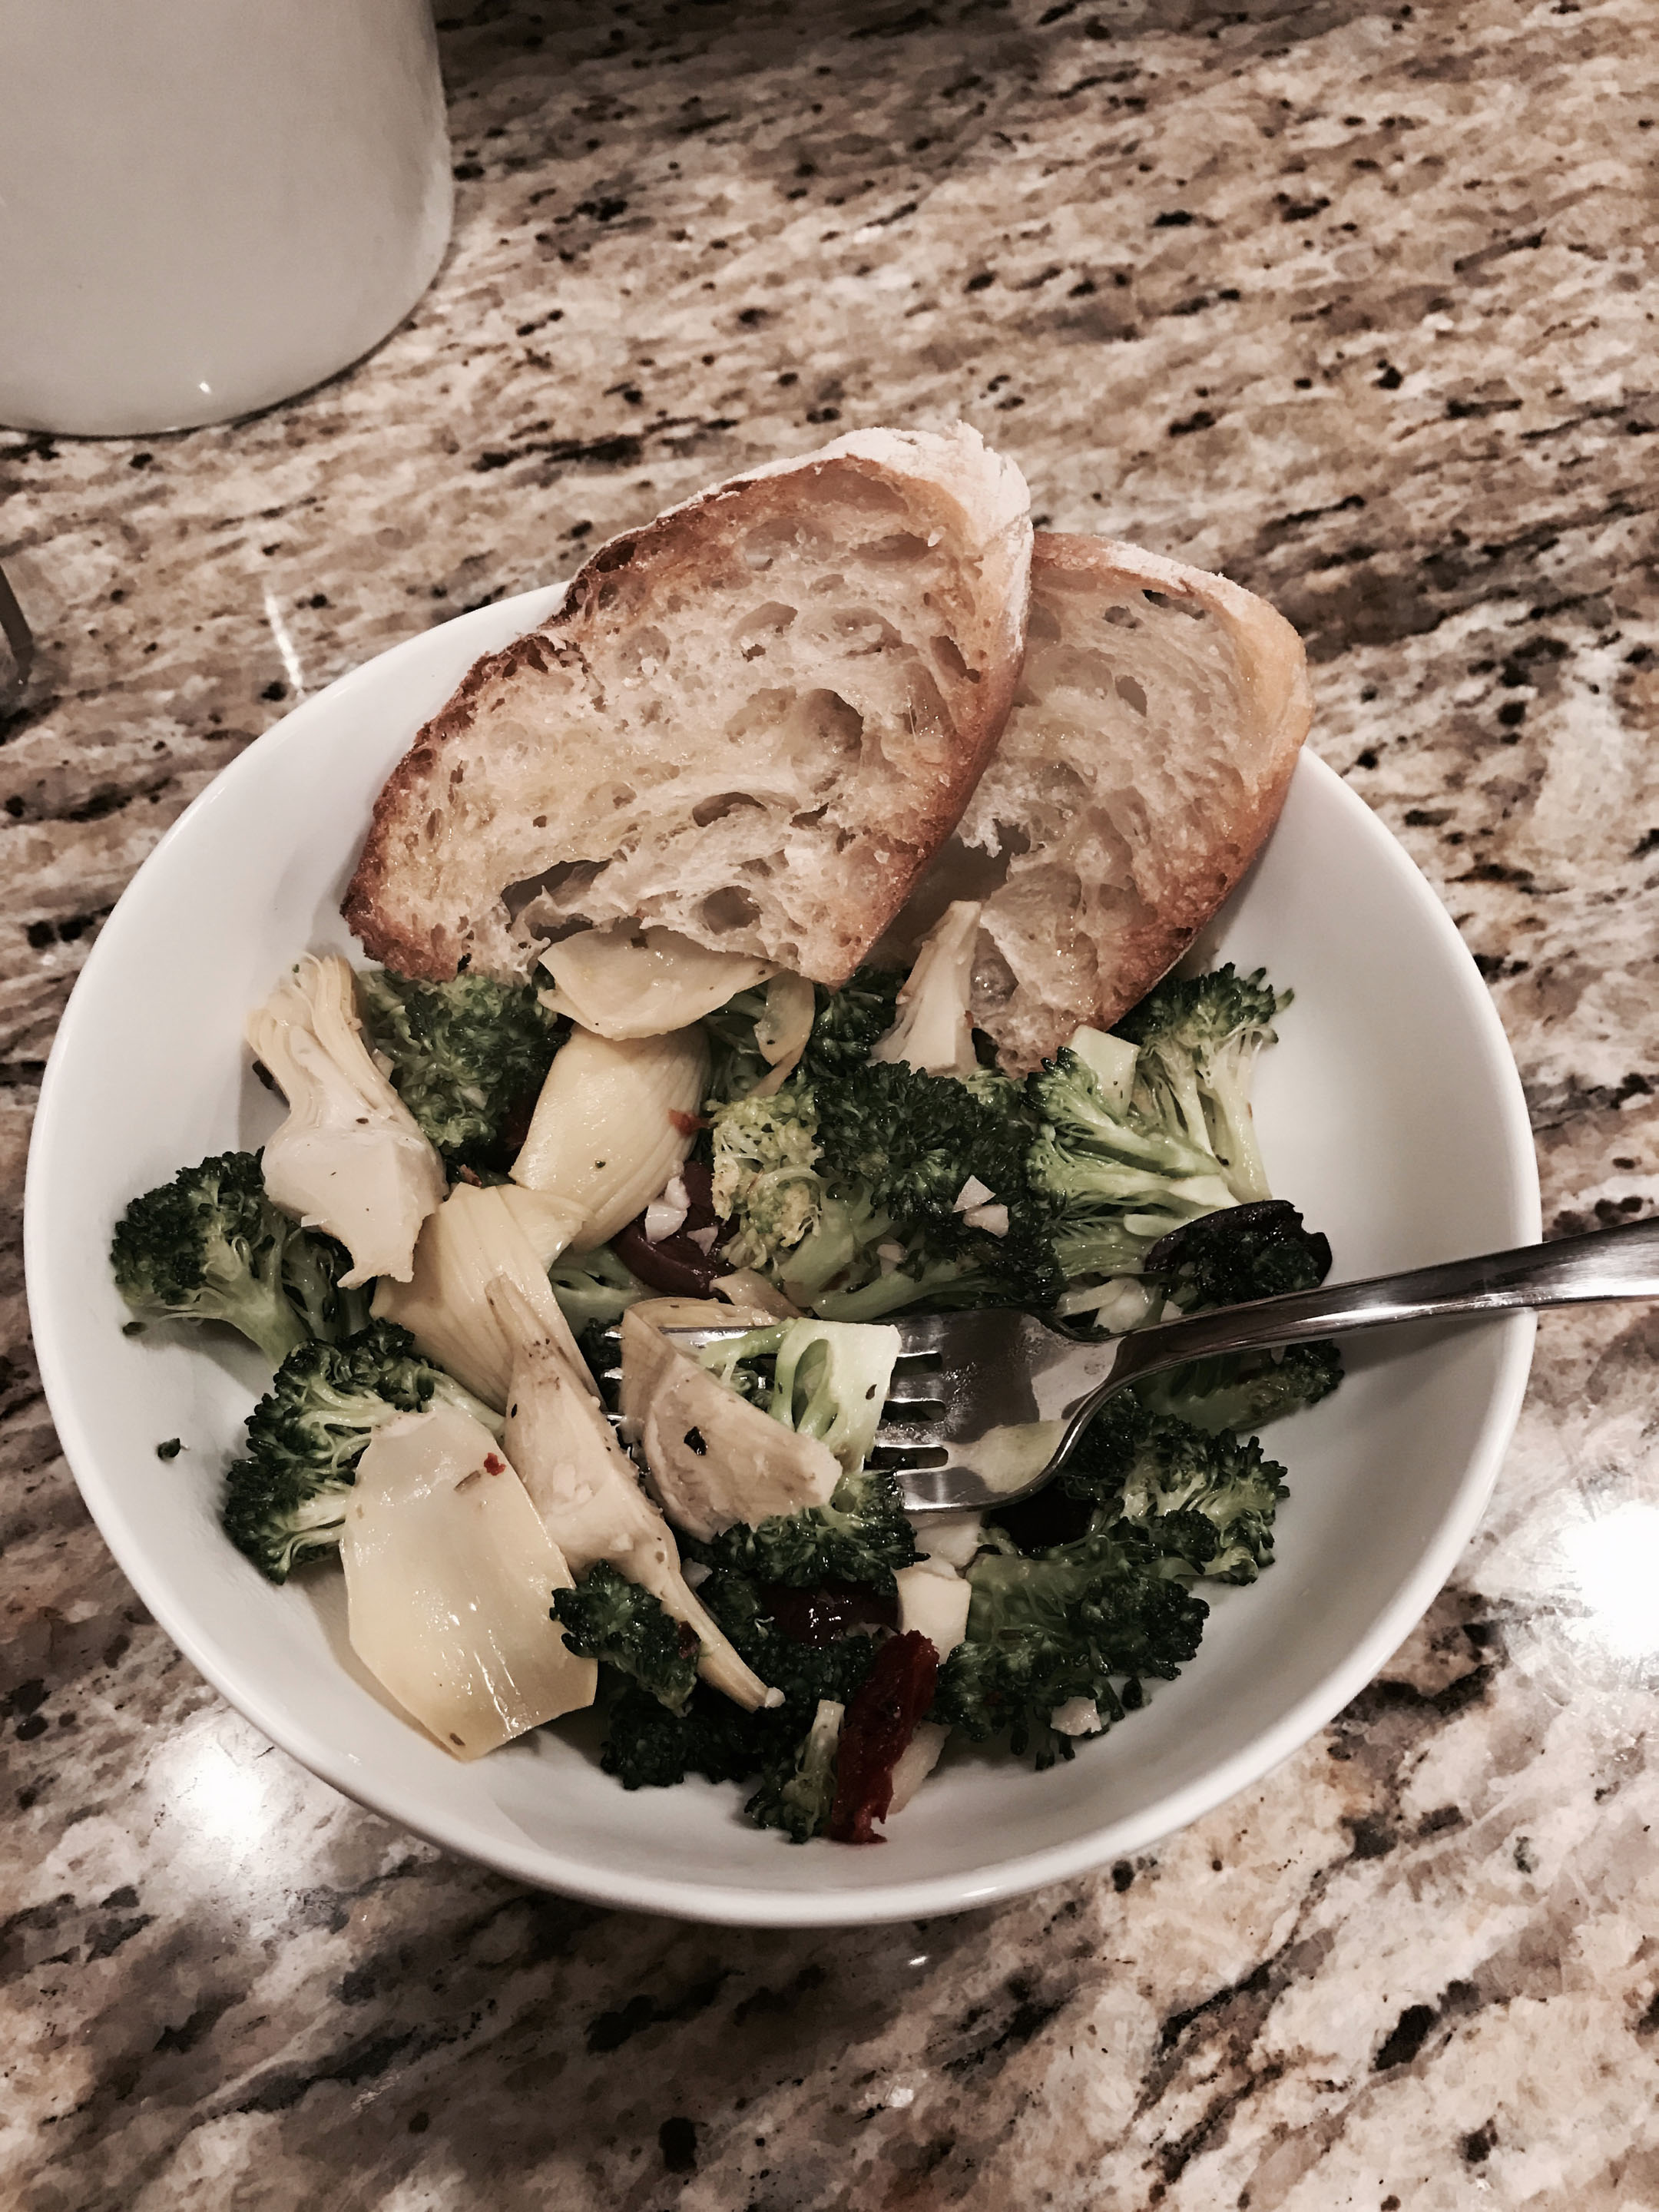 veggies and toasted bread